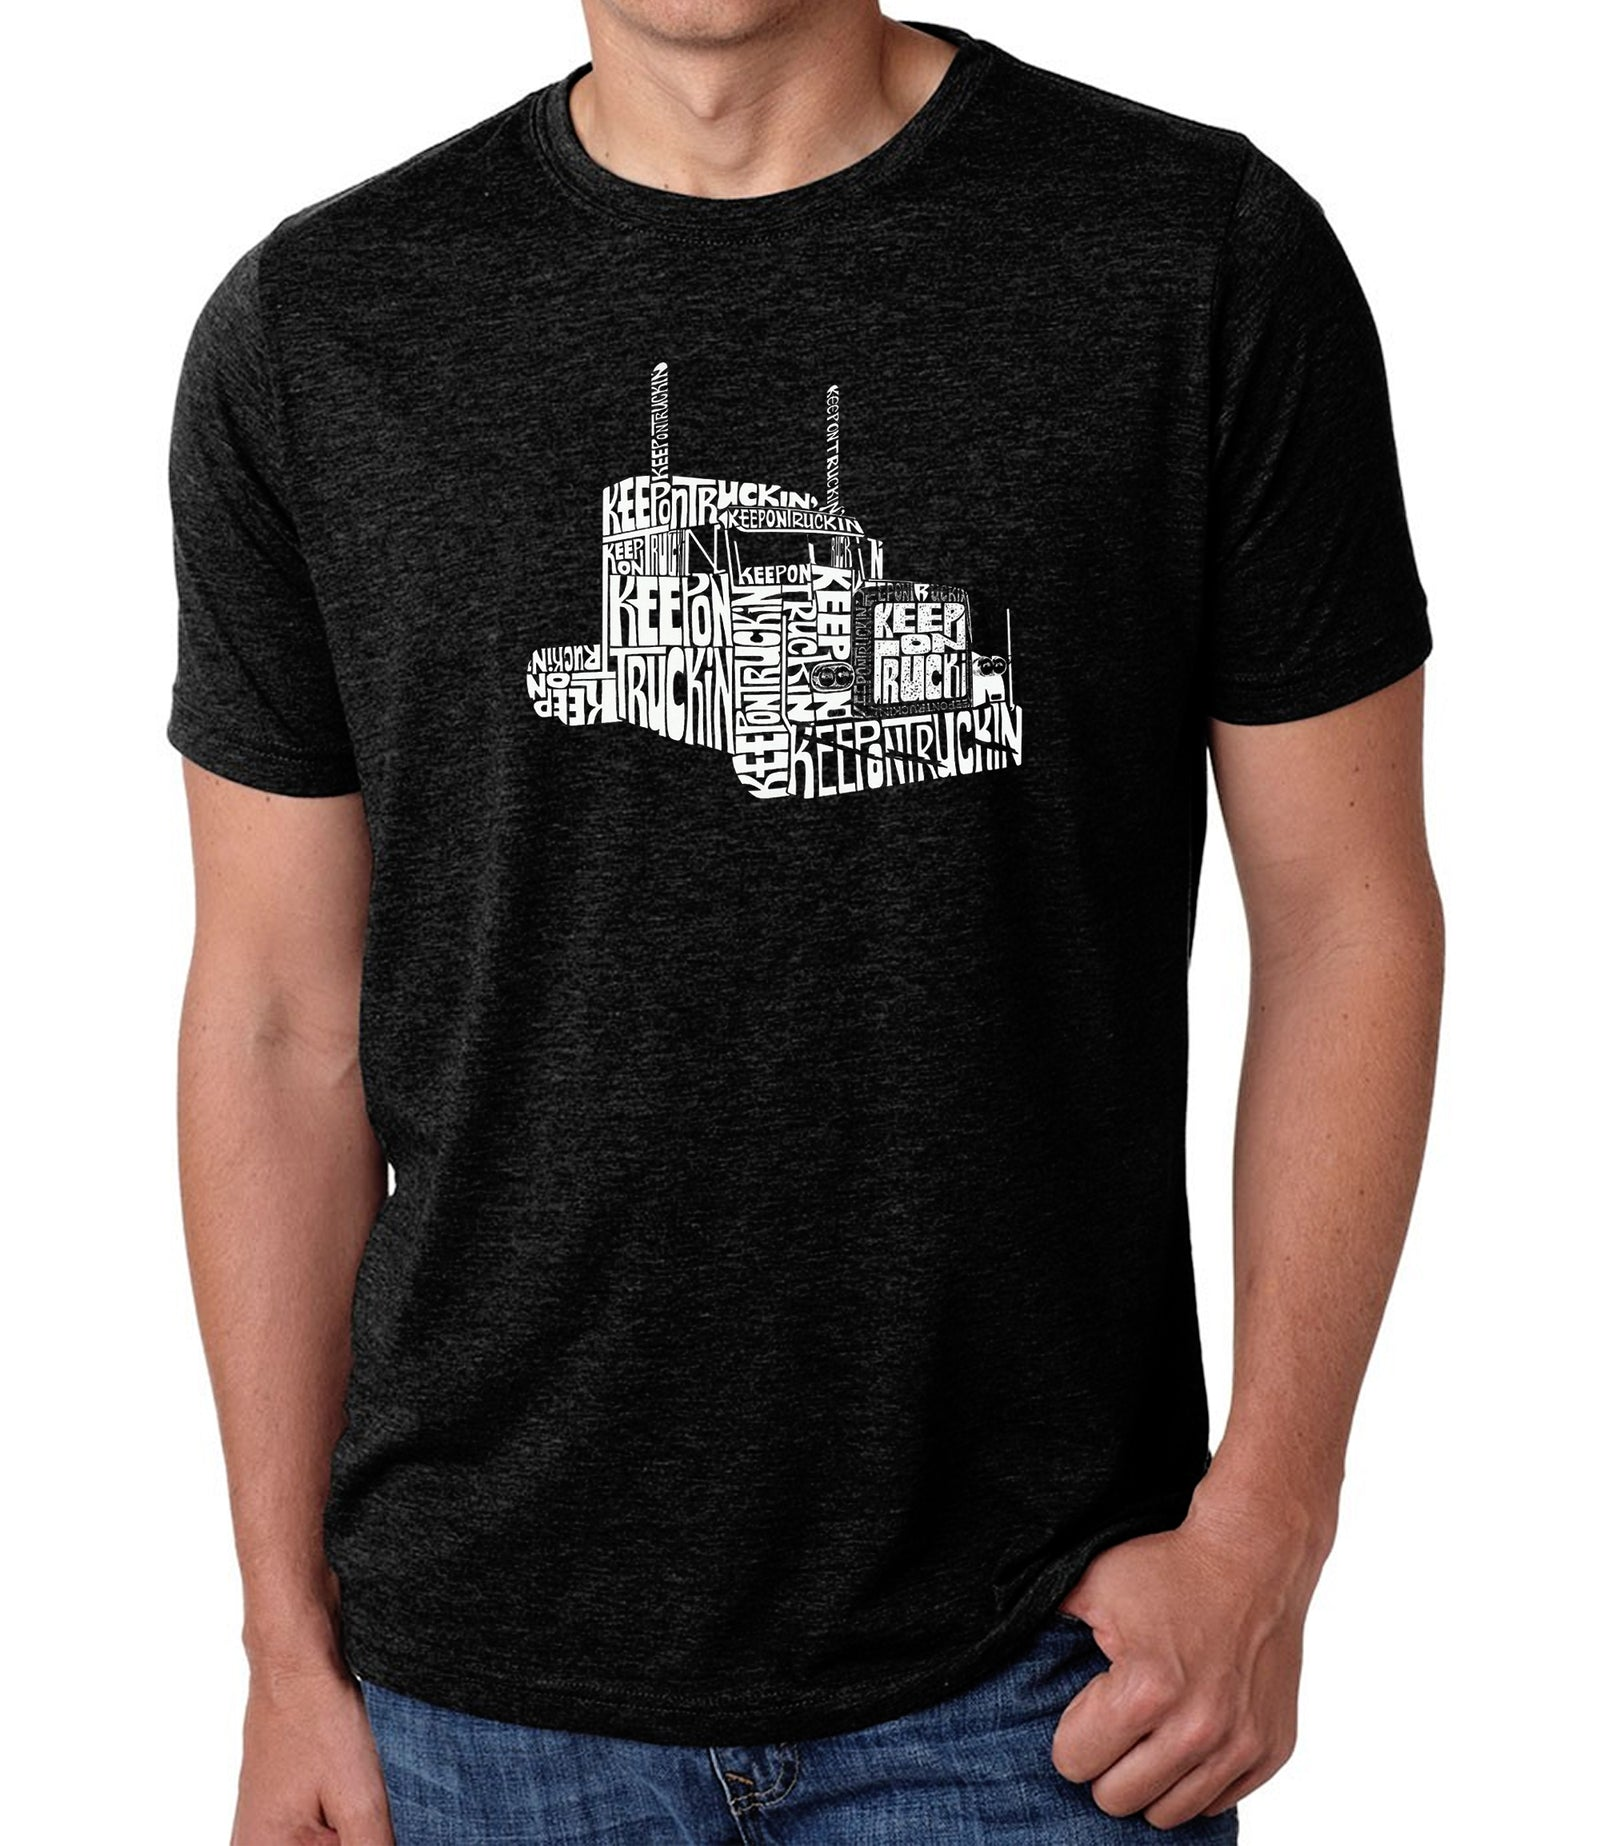 Men's Premium Blend Word Art T-shirt - KEEP ON TRUCKIN'